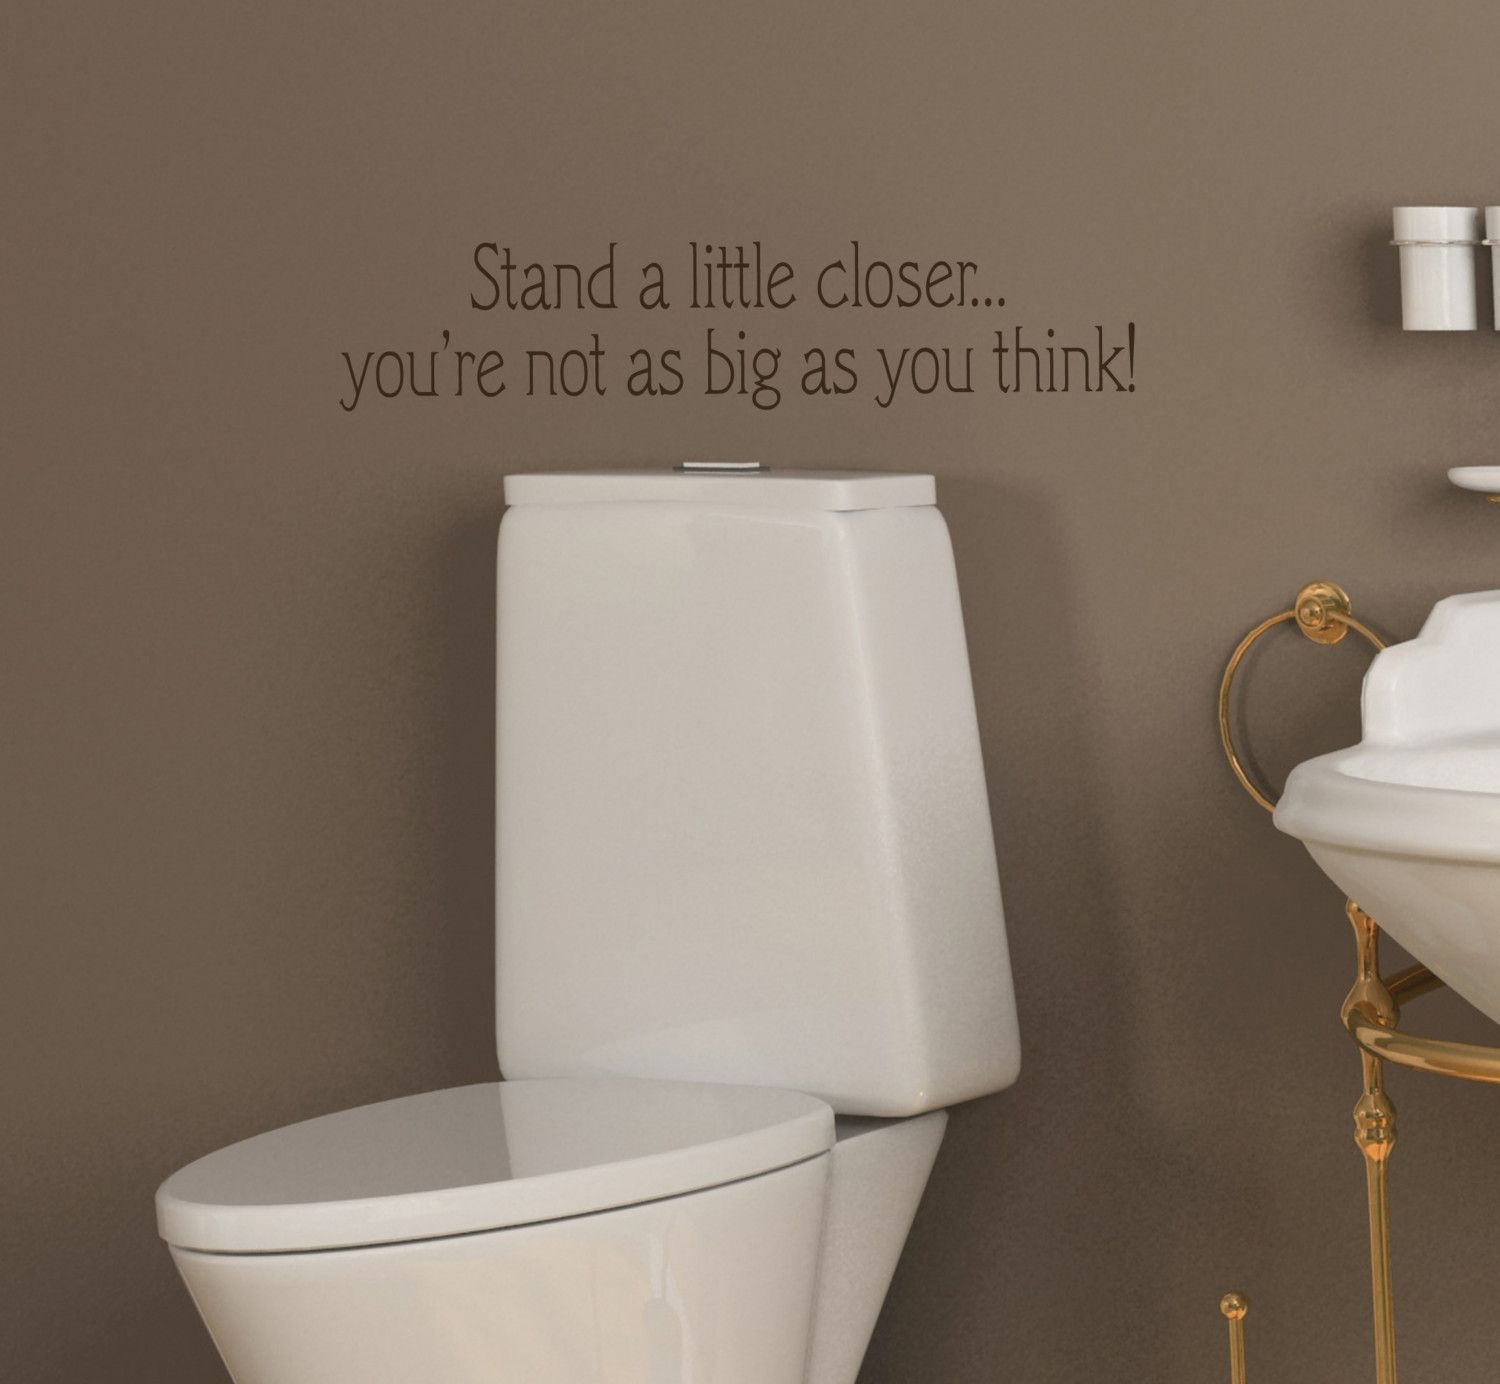 X Funny Bathroom Toilet Stand A Little Closer Vinyl Wall - Custom vinyl wall decals sayings for bathroom